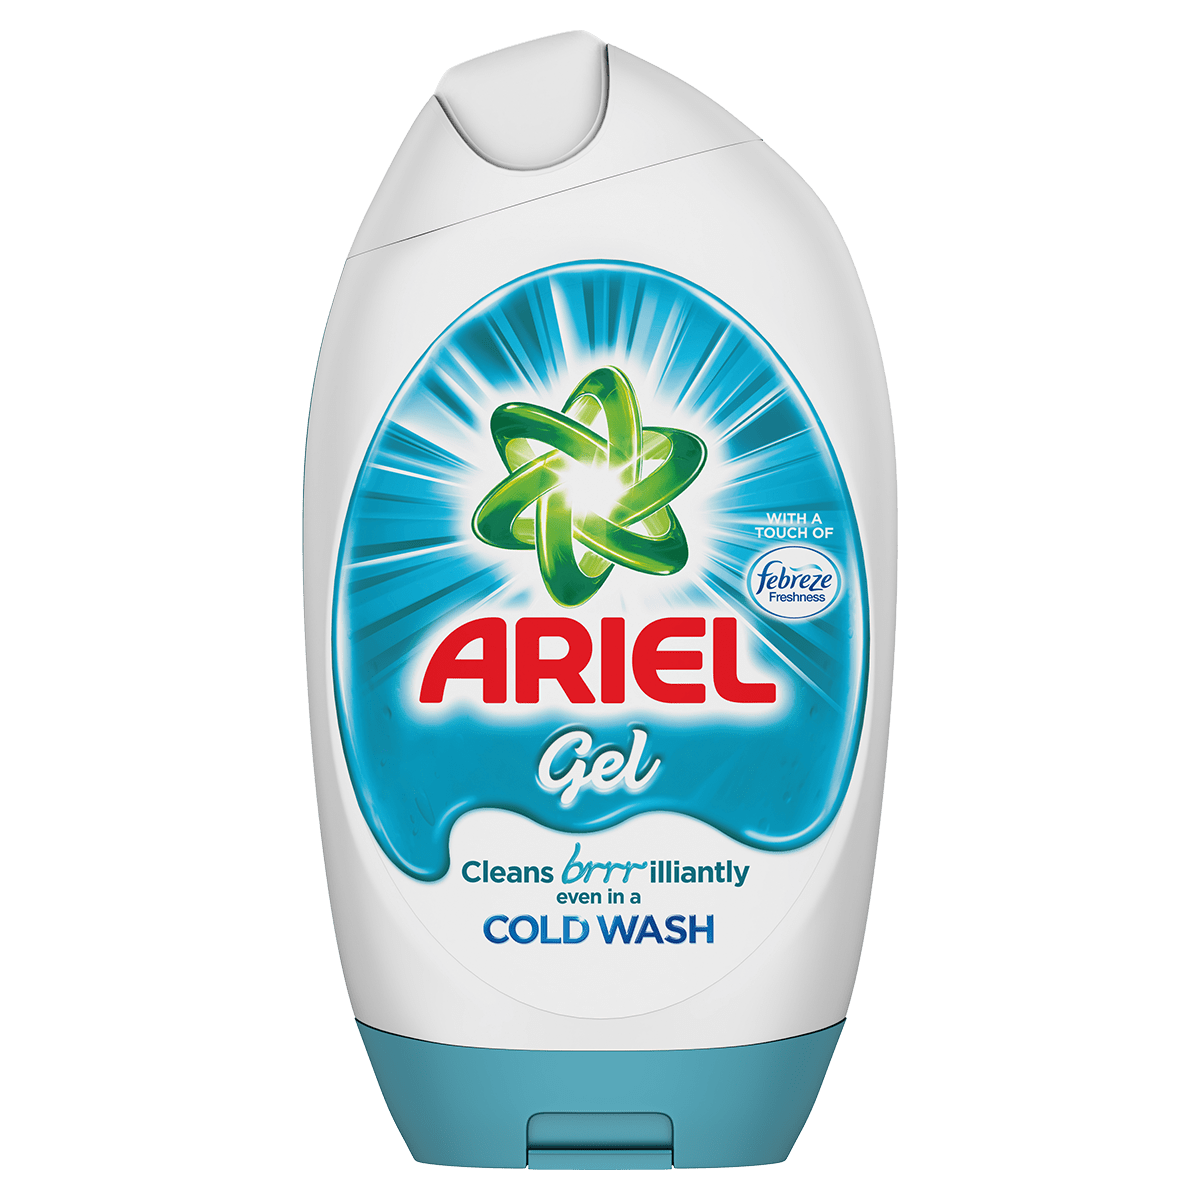 Ariel Washing Gel with a Touch of Febreze